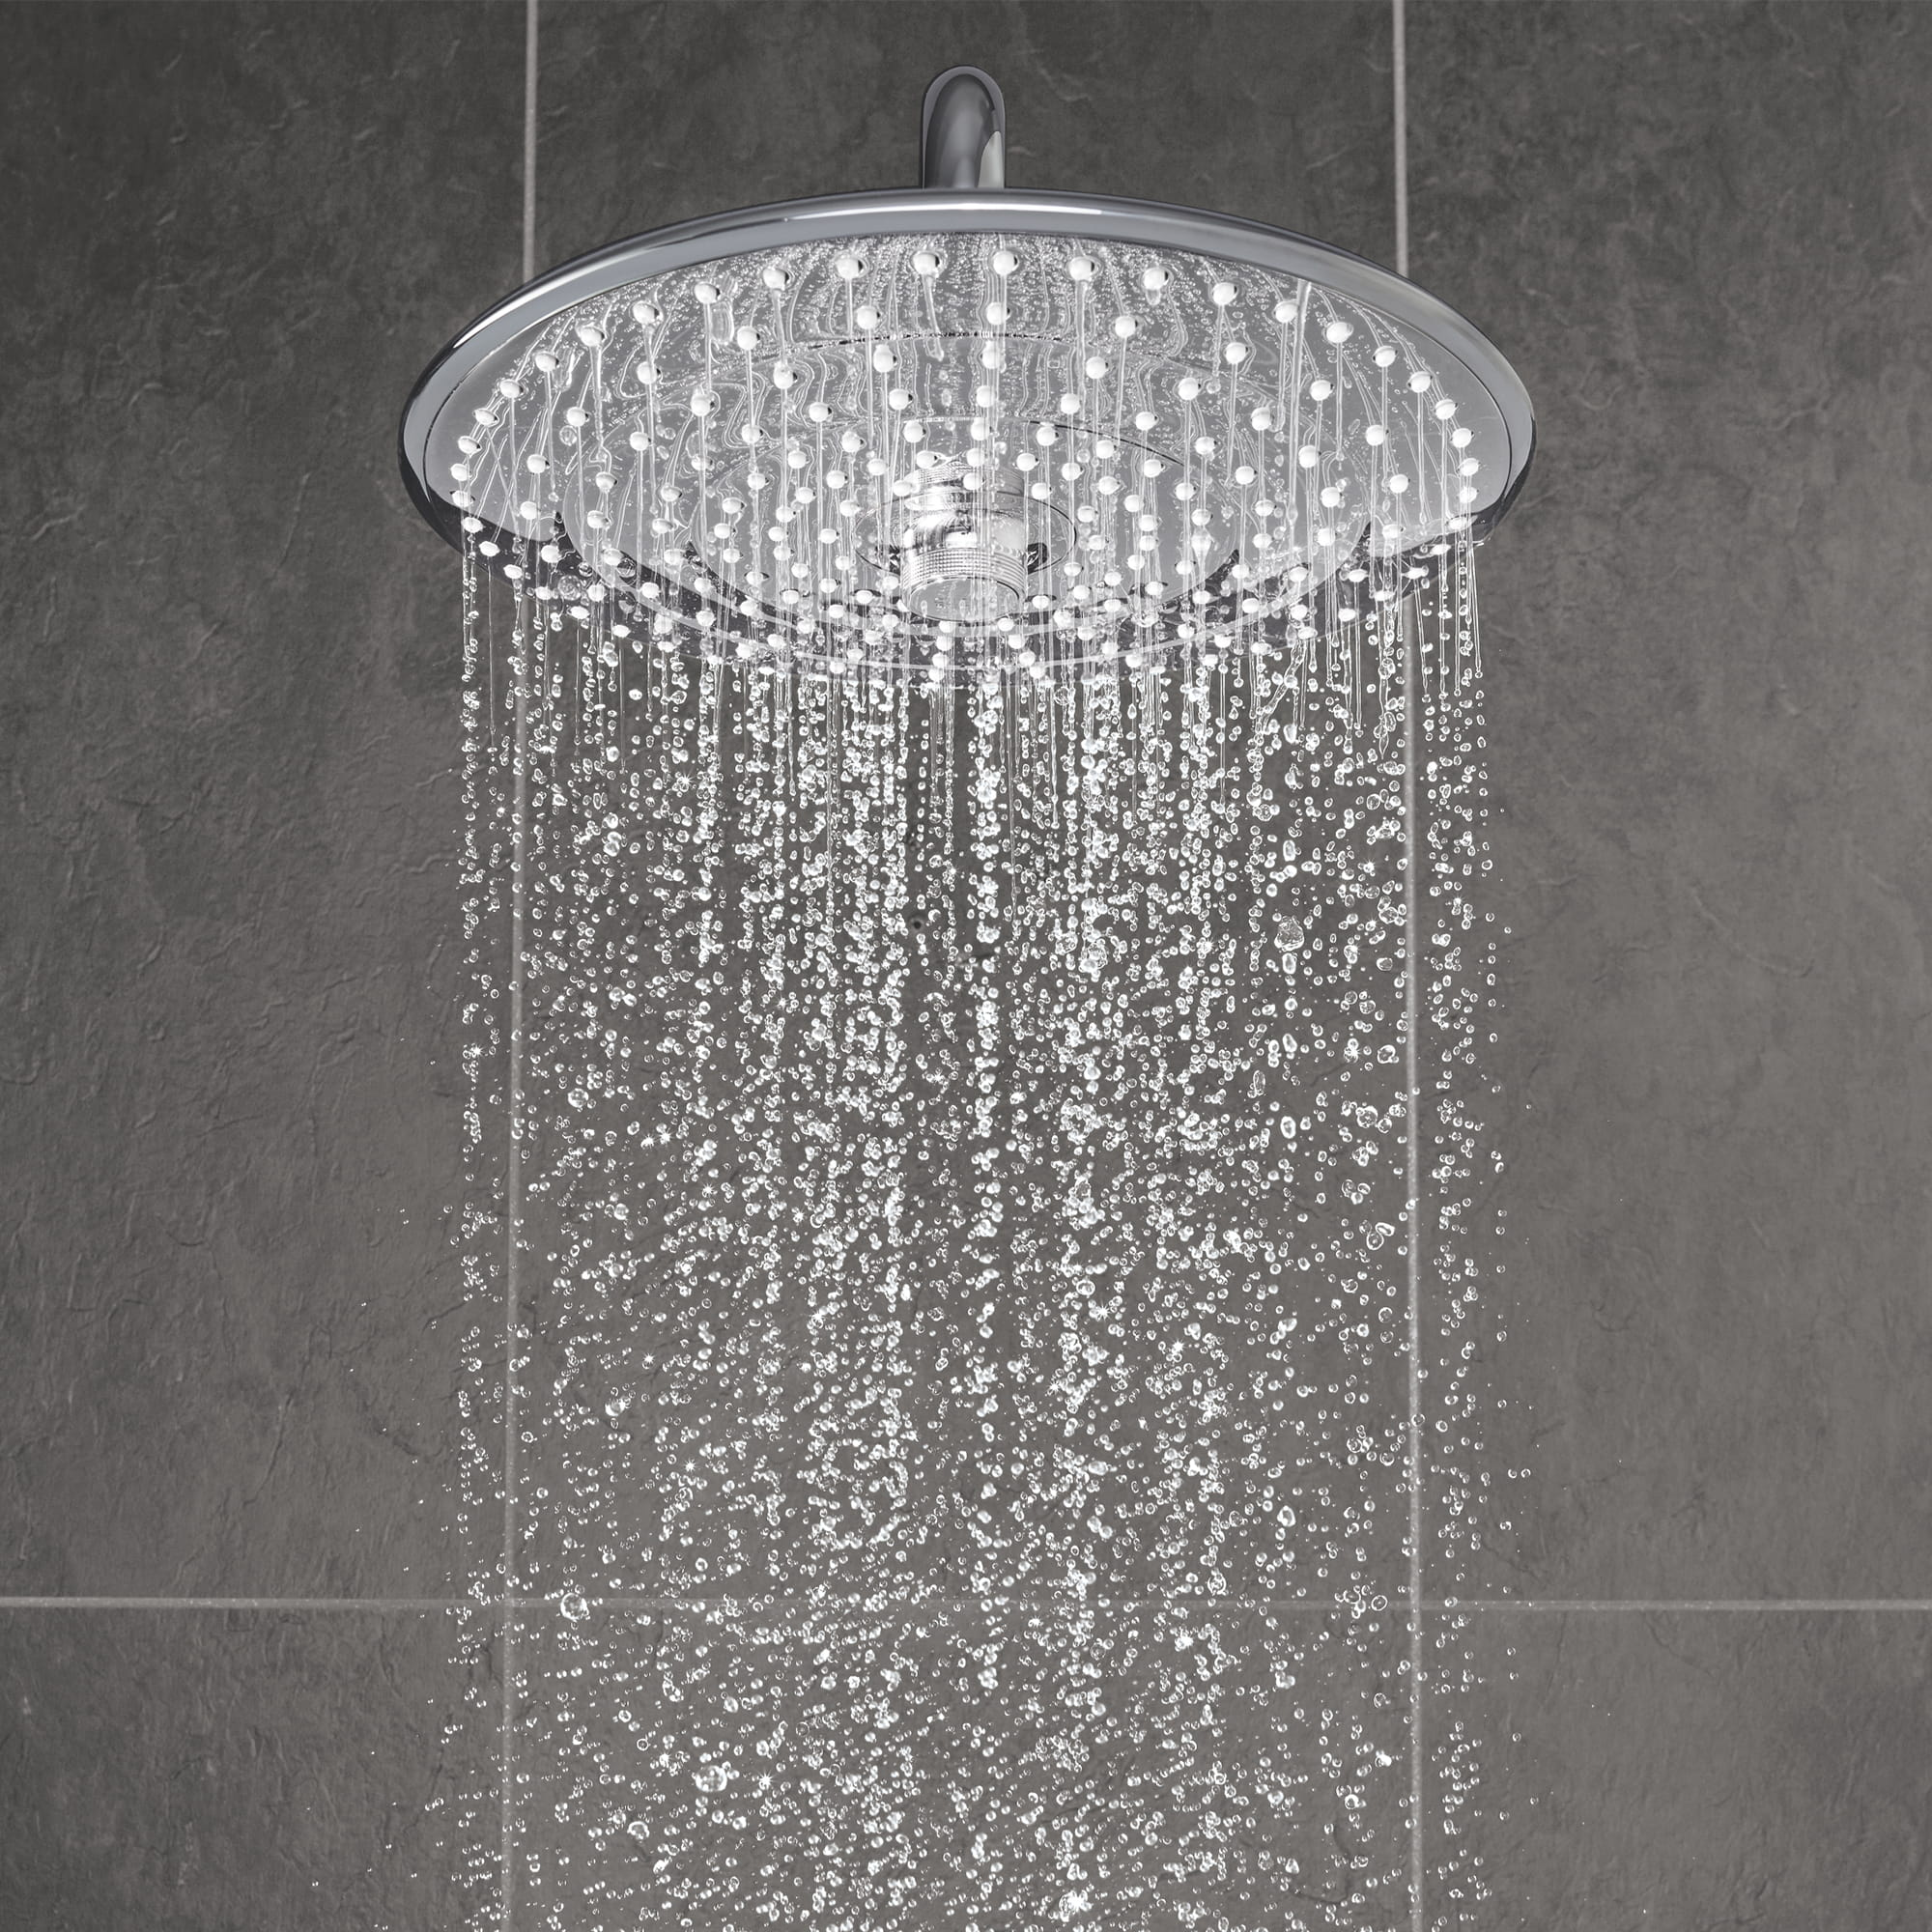 Shower head displaying SmartRain spray.